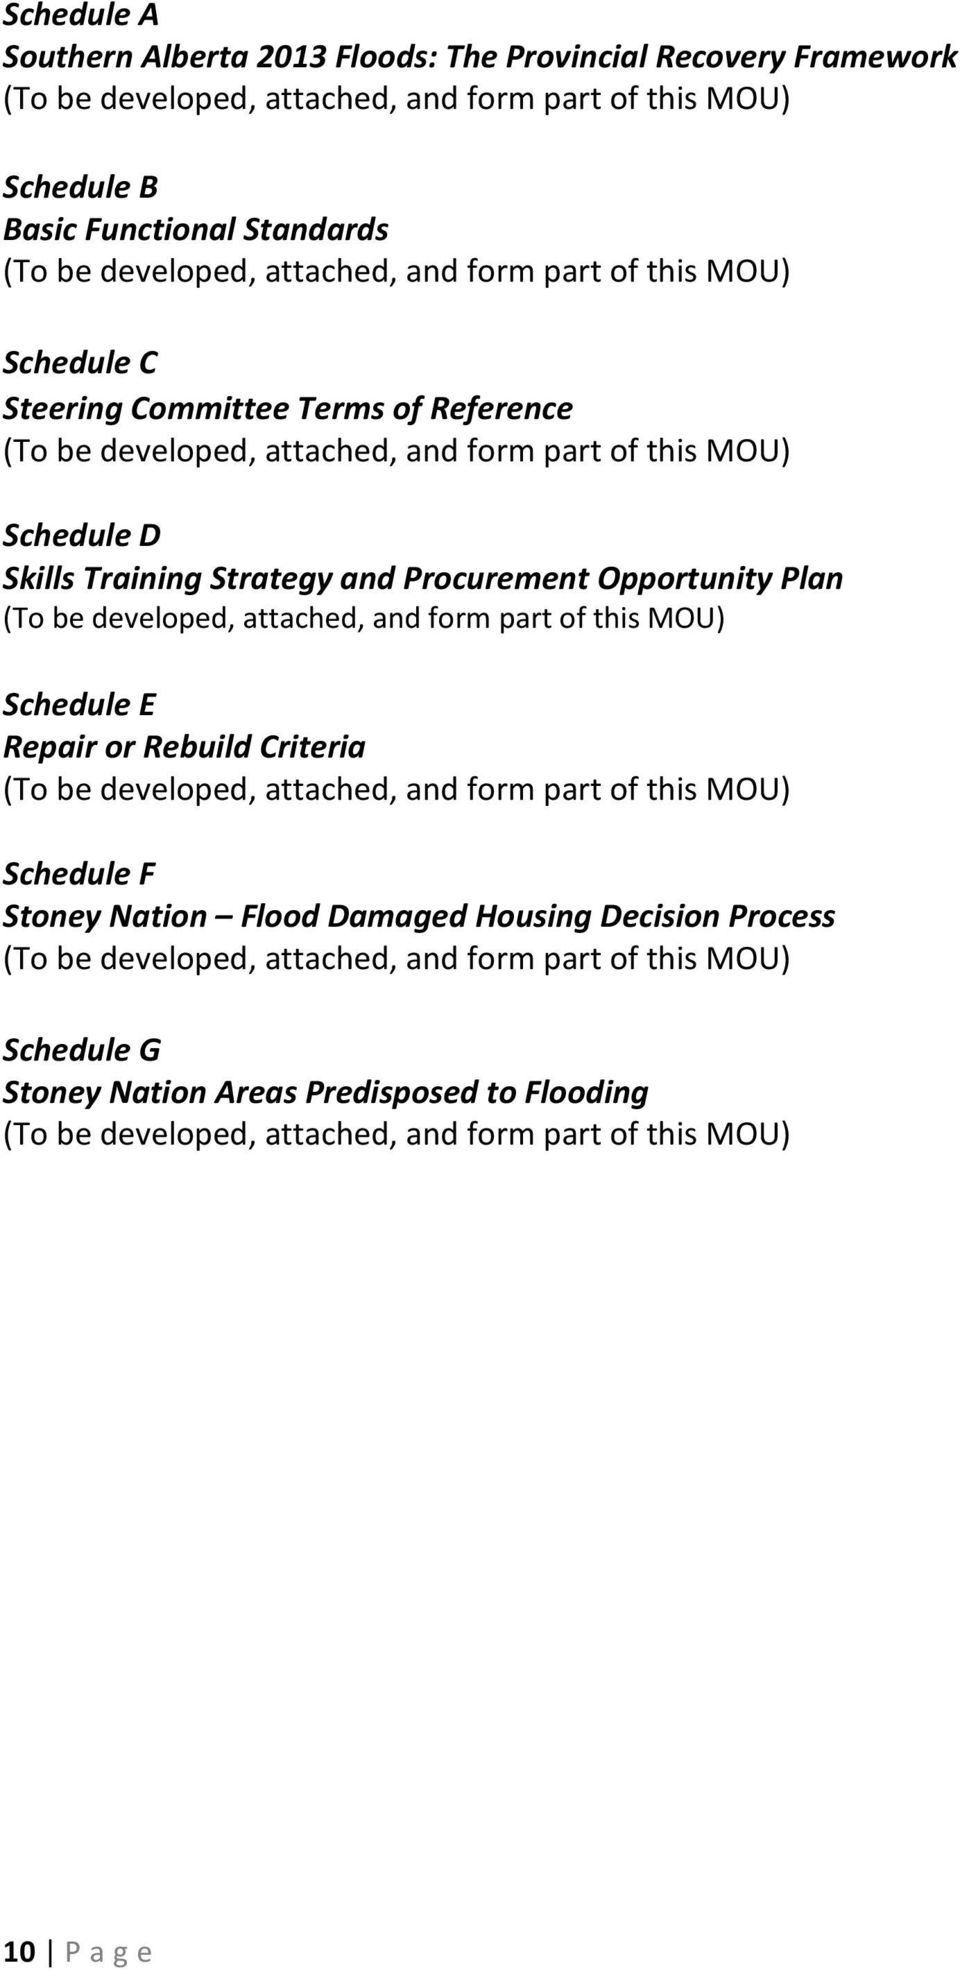 Strategy and Procurement Opportunity Plan Schedule E Repair or Rebuild Criteria Schedule F Stoney